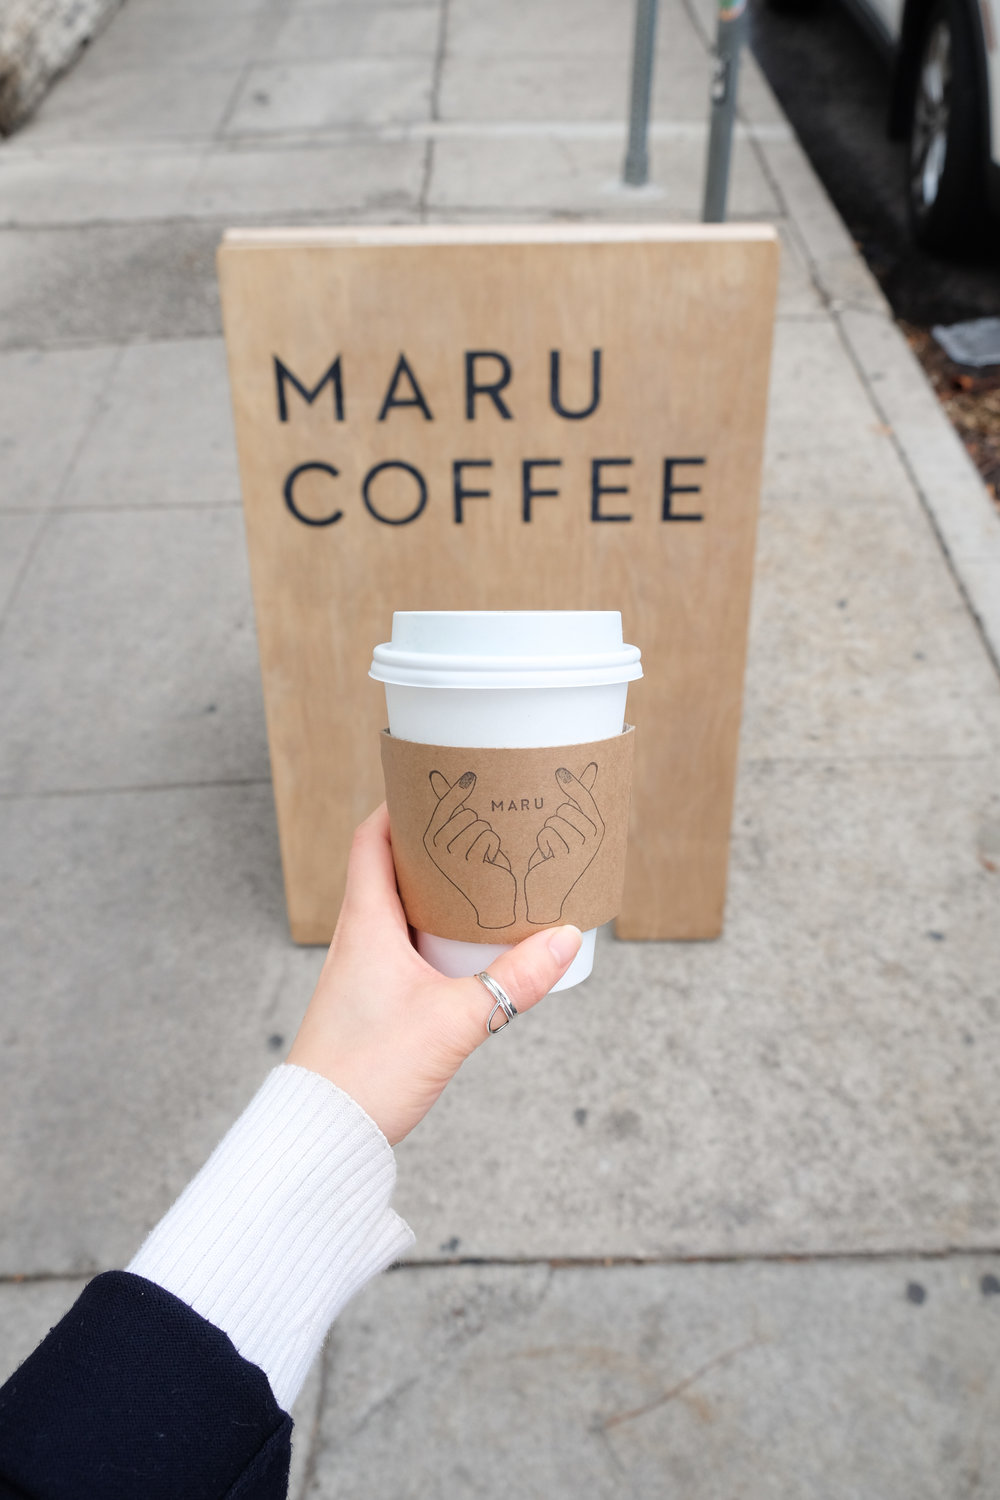 Leahshene-Los-Angeles-Maru-Coffee-105314.jpg